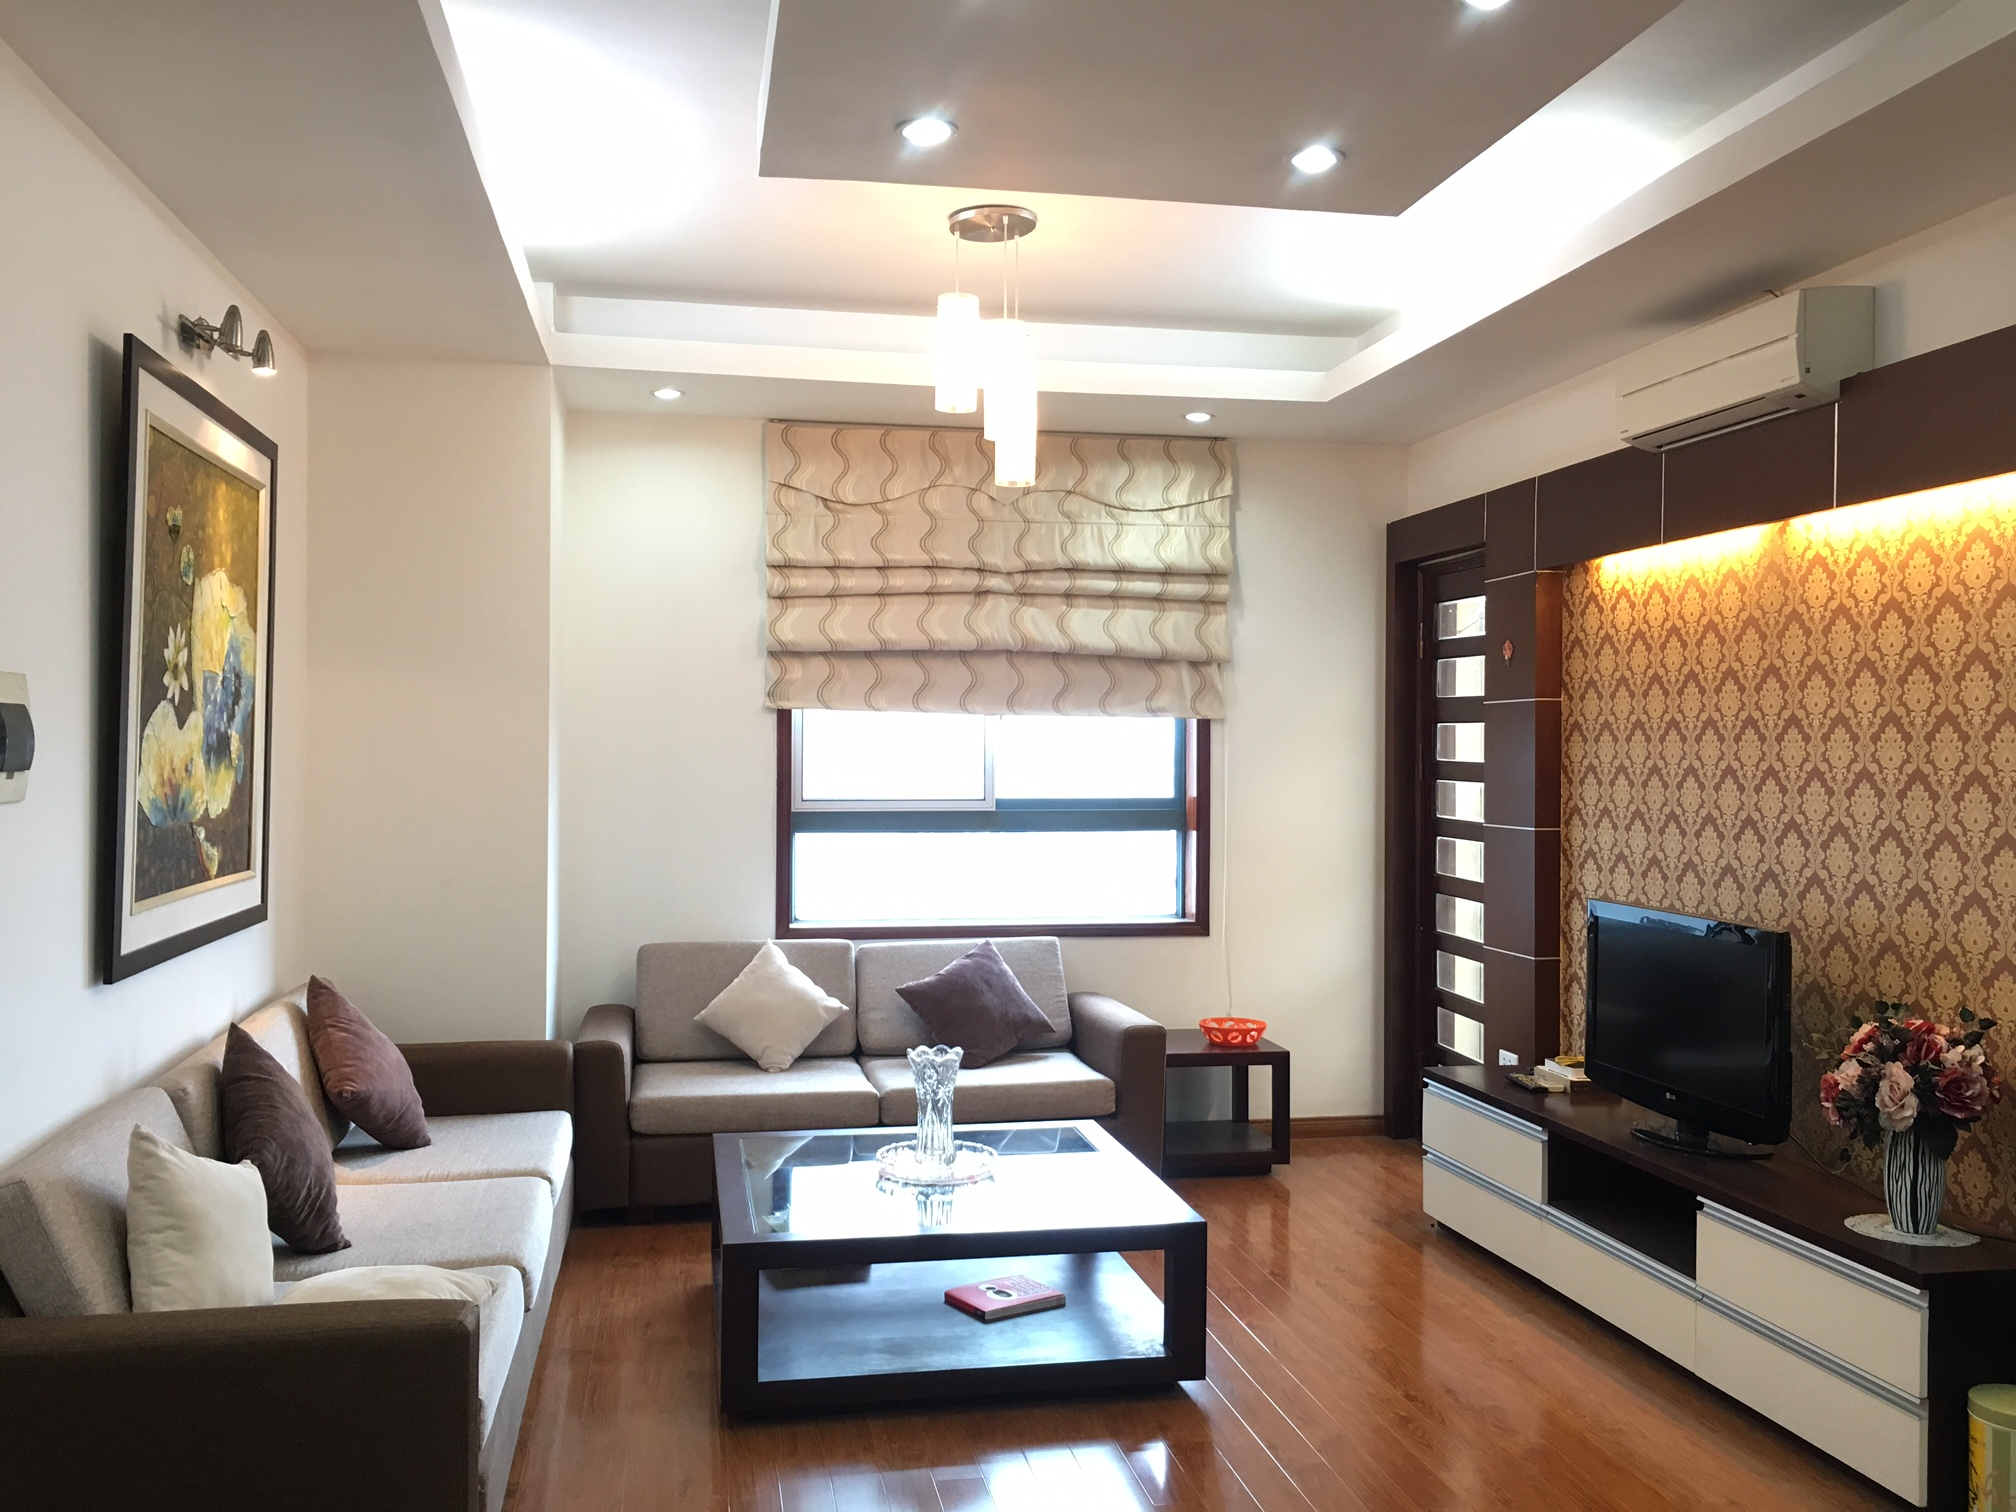 Apartments in Tay Ho